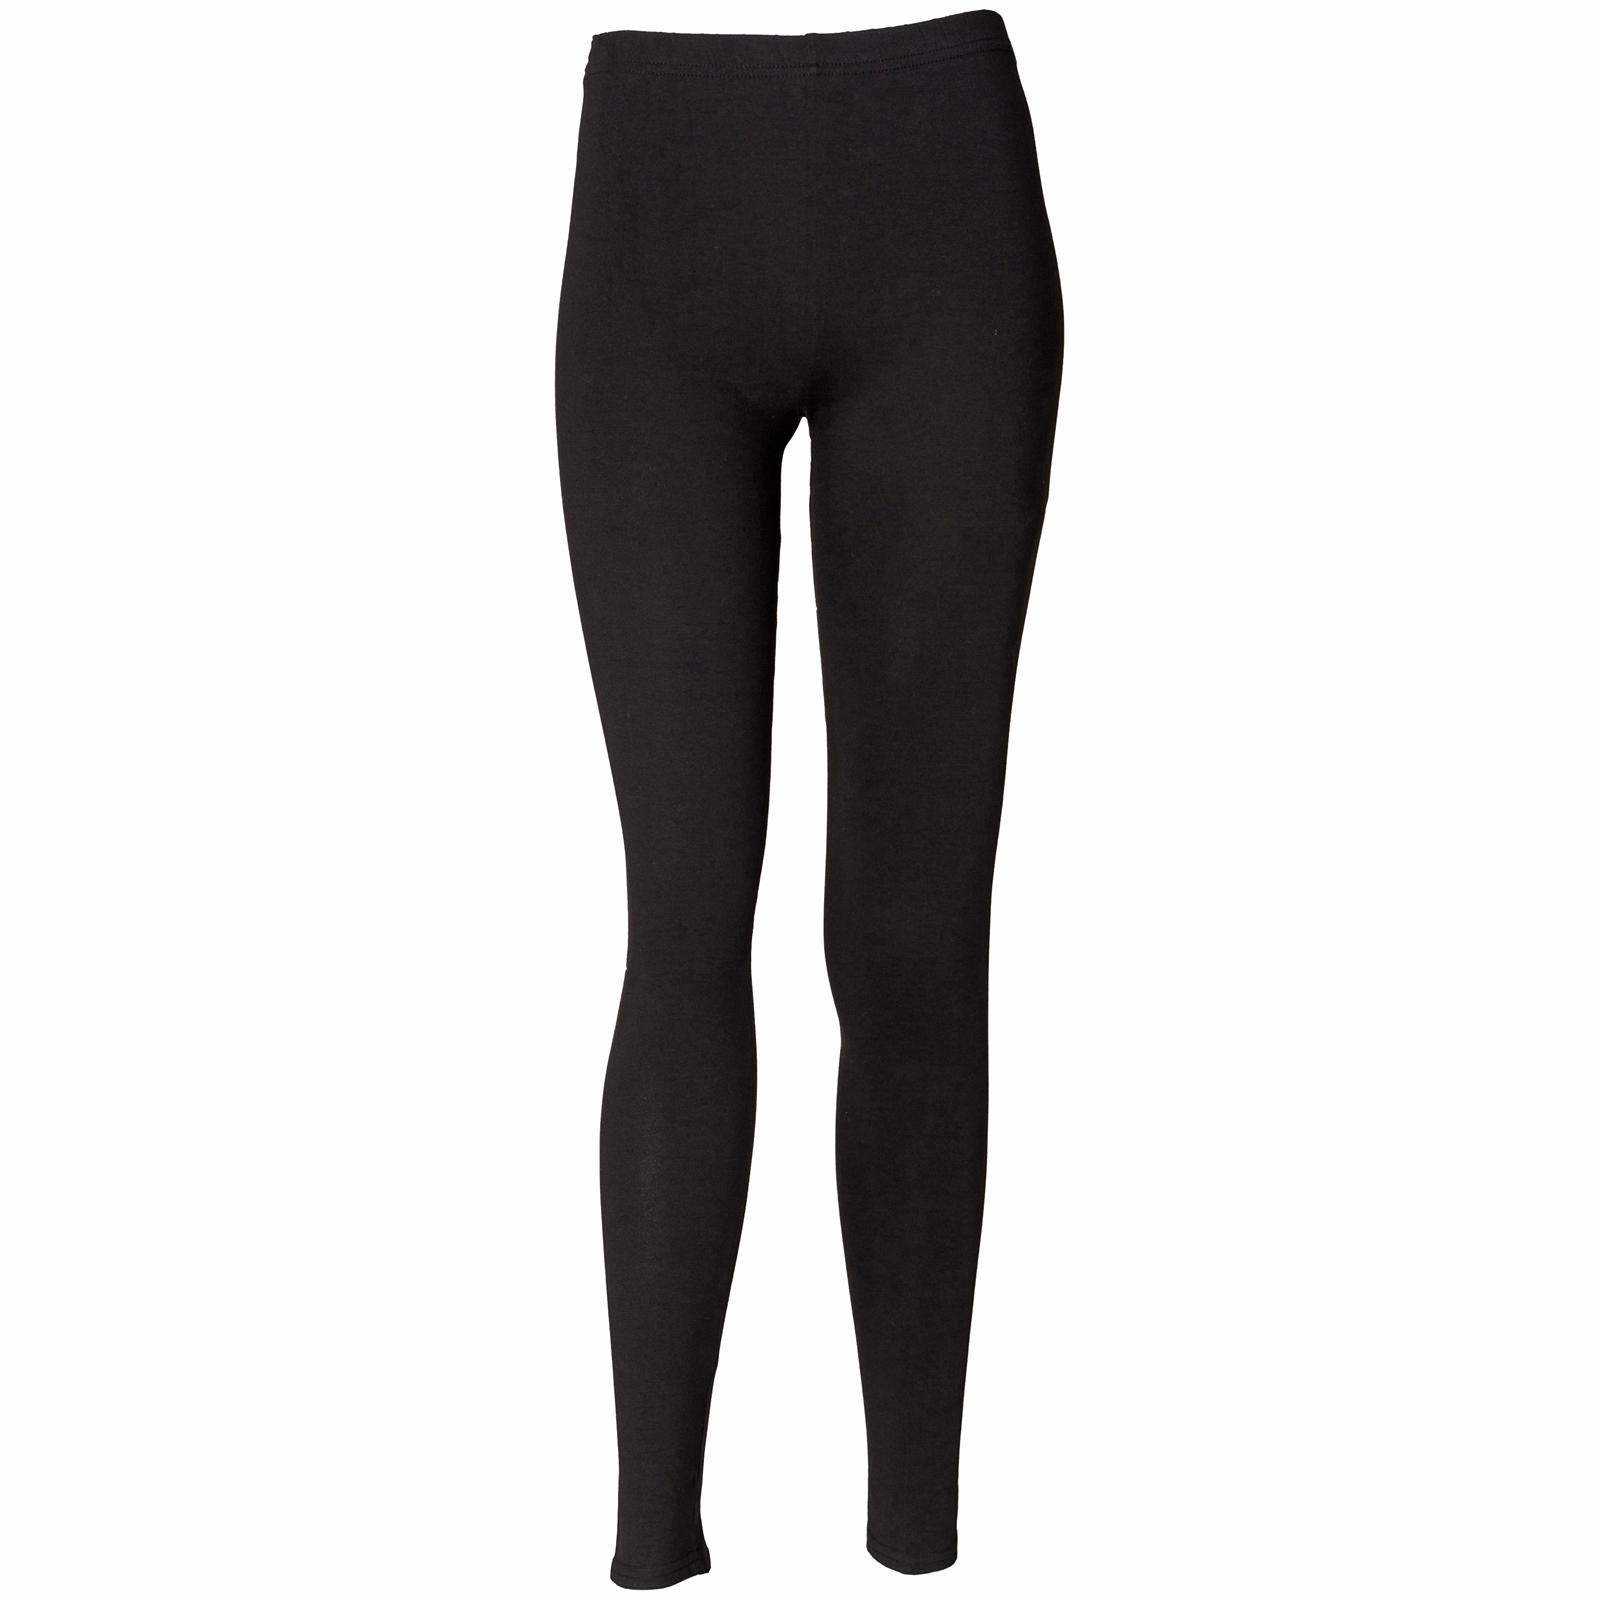 New SKINNI FIT Womens Ladies Elasticated Leggings in Black S - XL